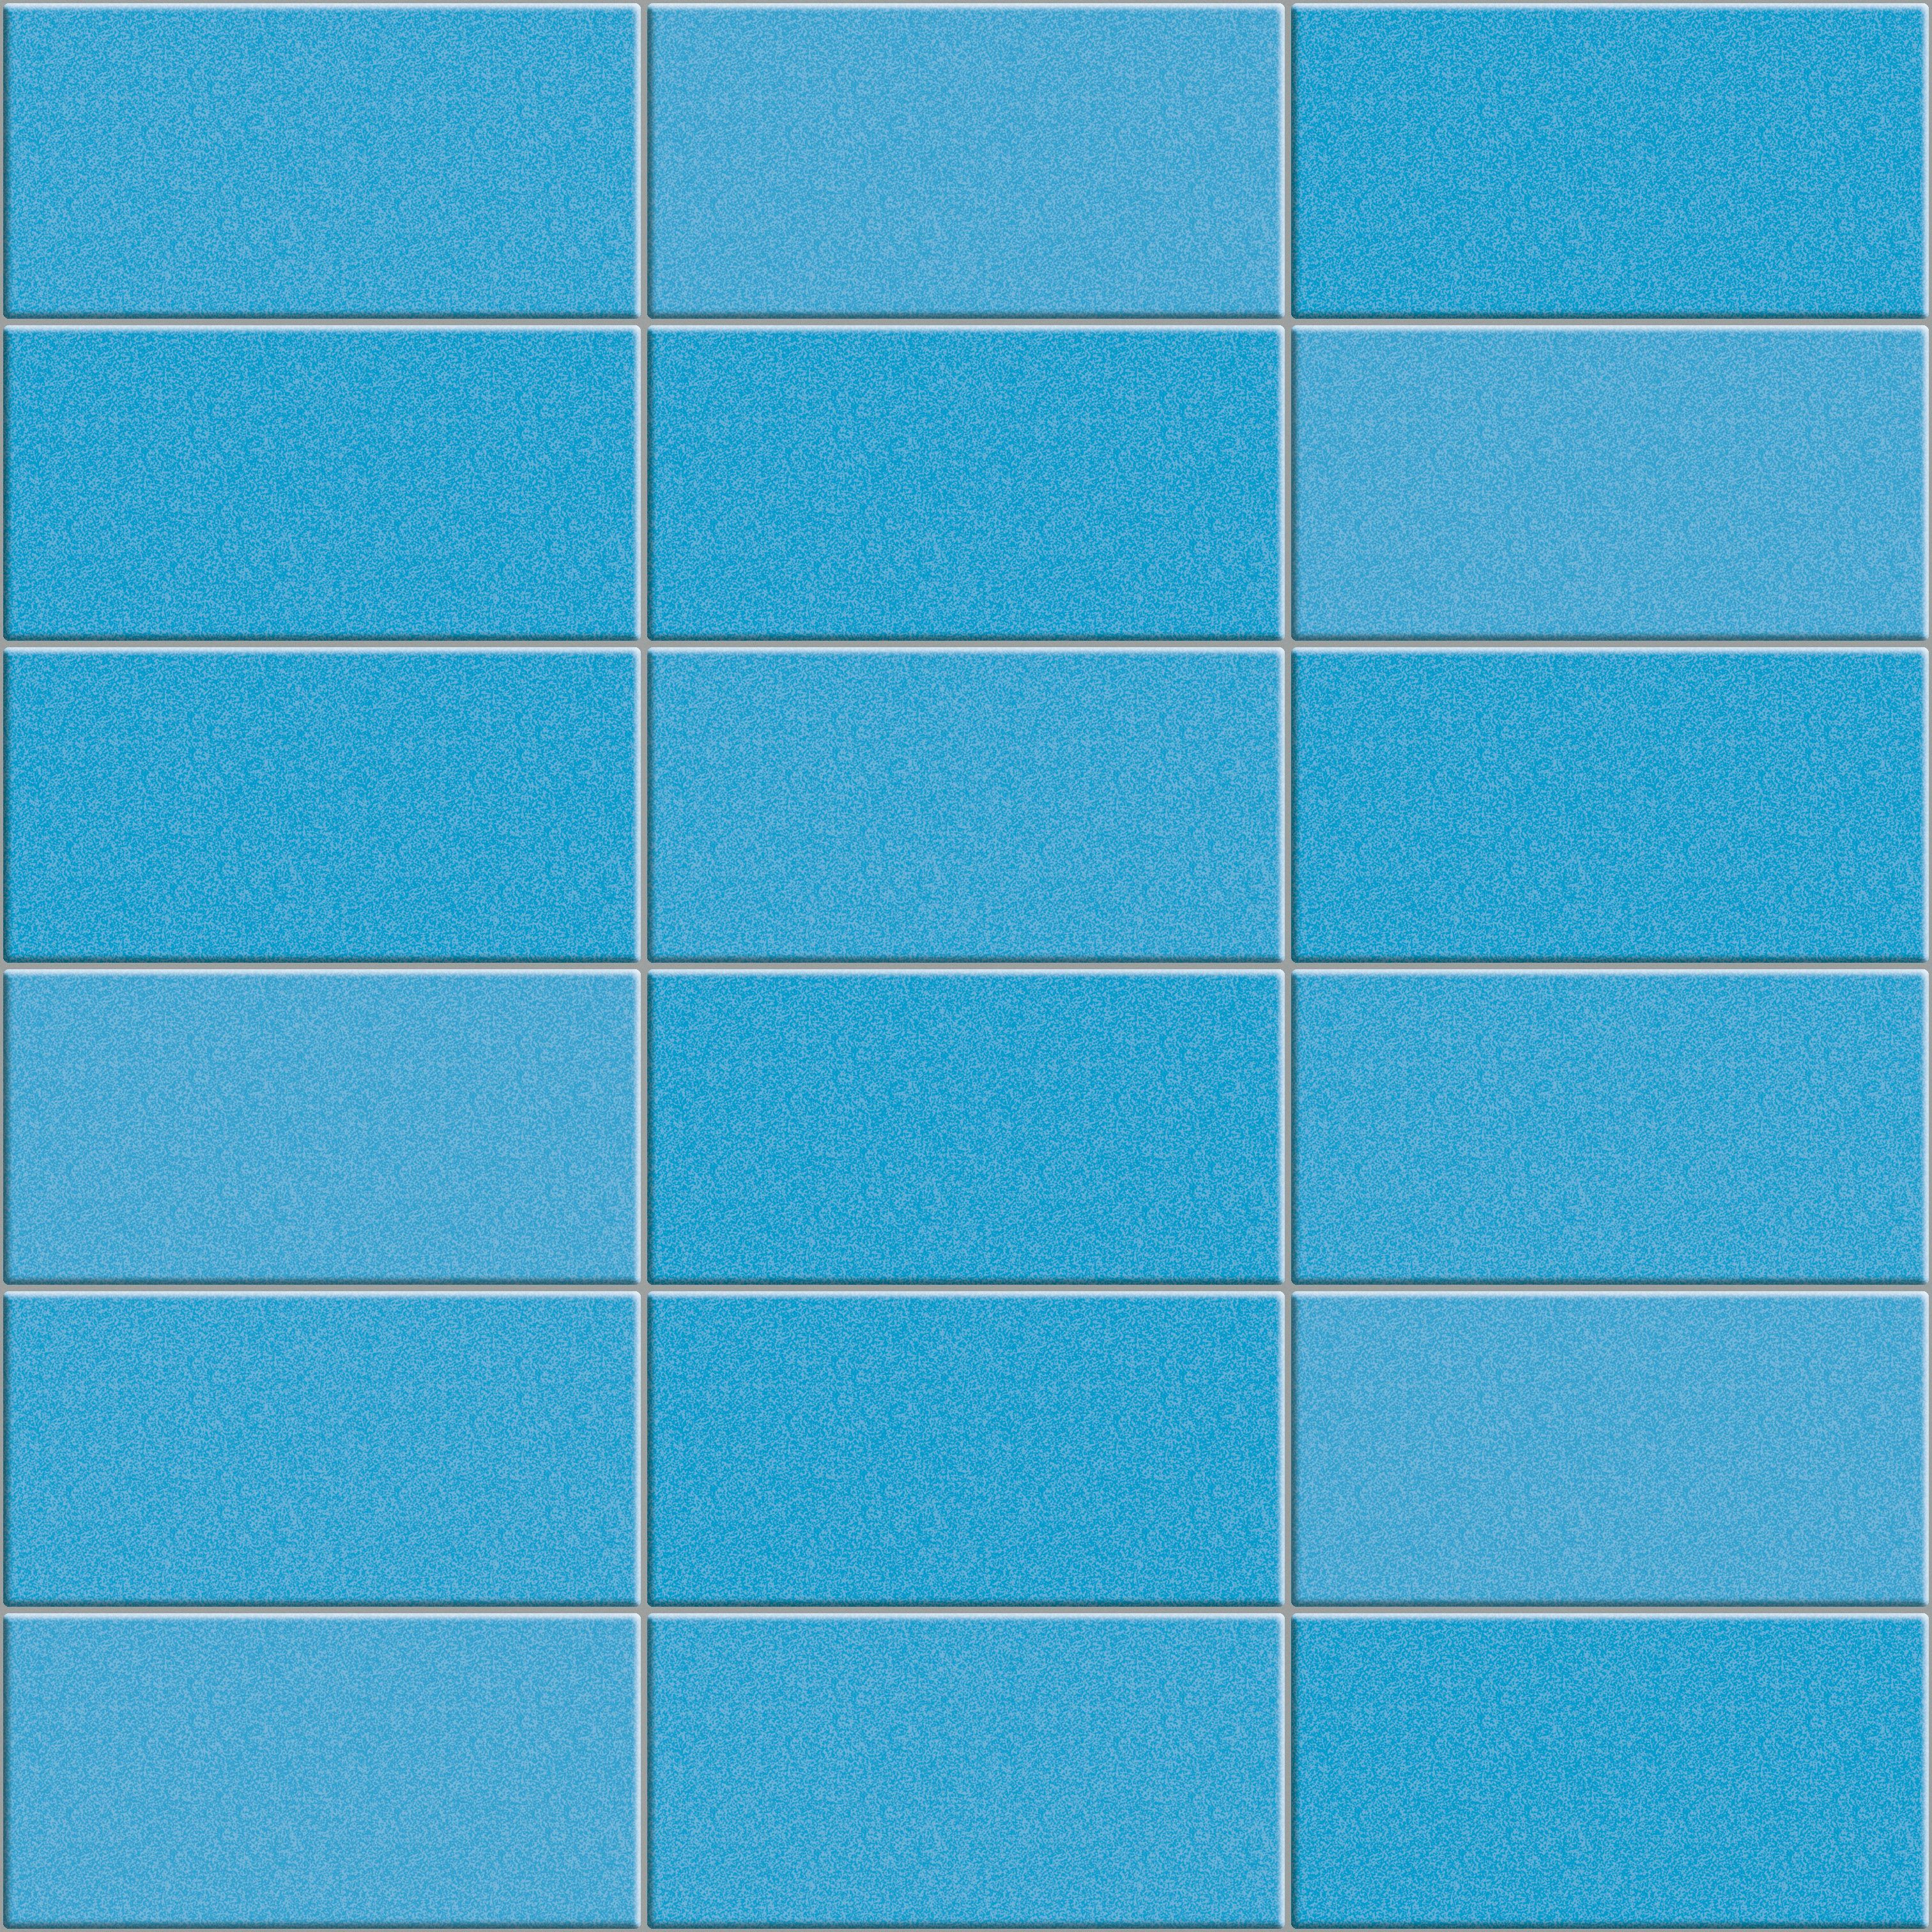 Blue Tiles. Steel Blue Matt Tiles L - Brint.co